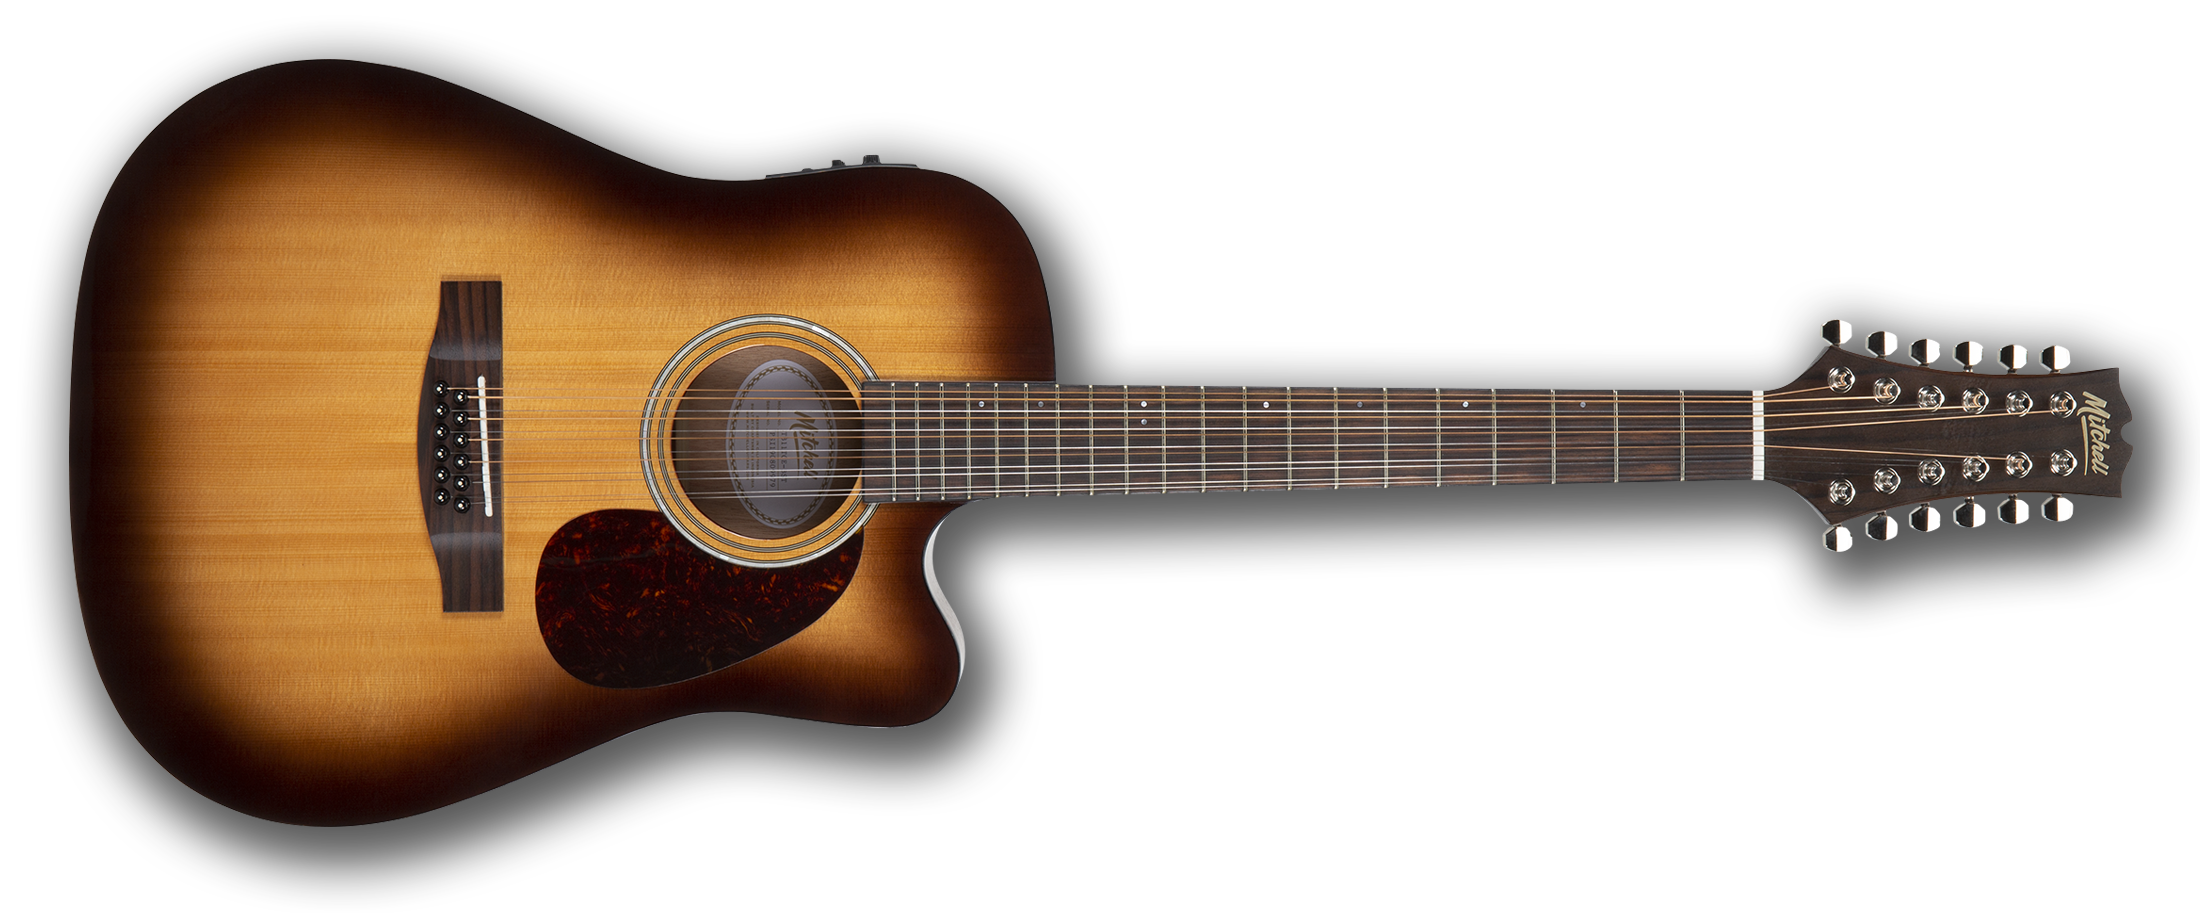 Mitchell T311TCE 12-String Dreadnought Acoustic Guitar Terra Series